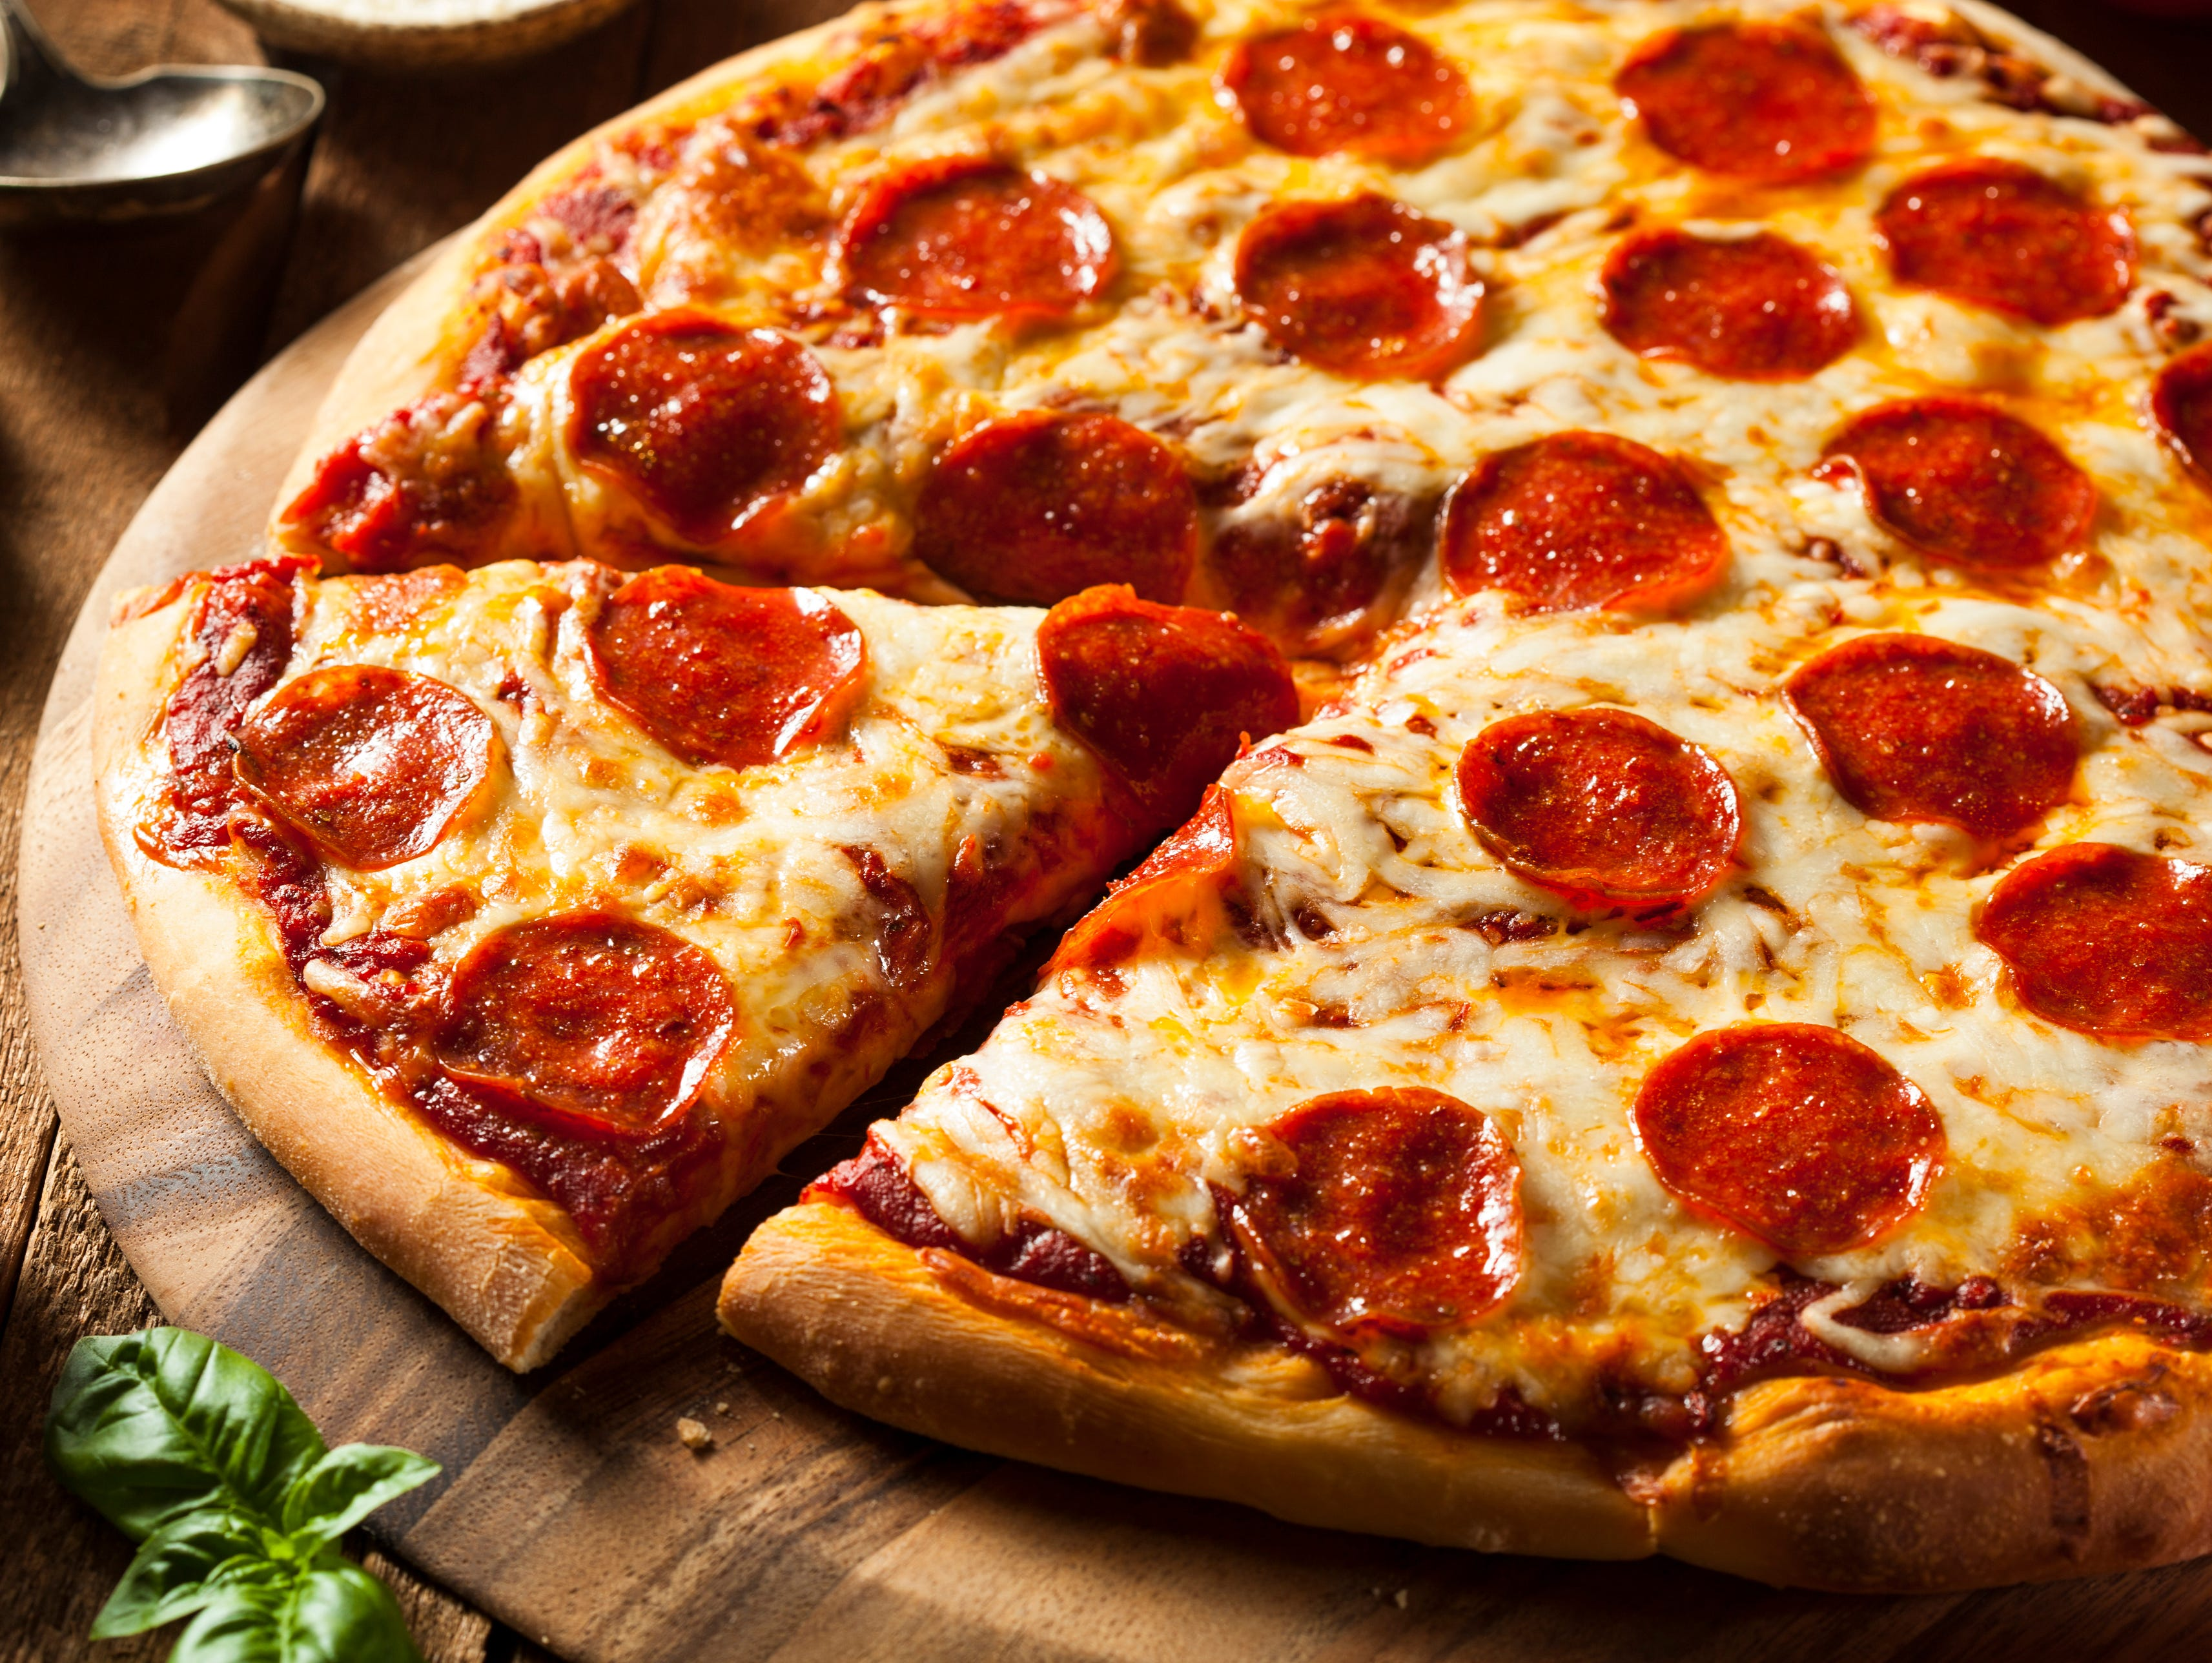 Buy any large pizza at the regular price and get a second pizza of equal or lesser value FREE.